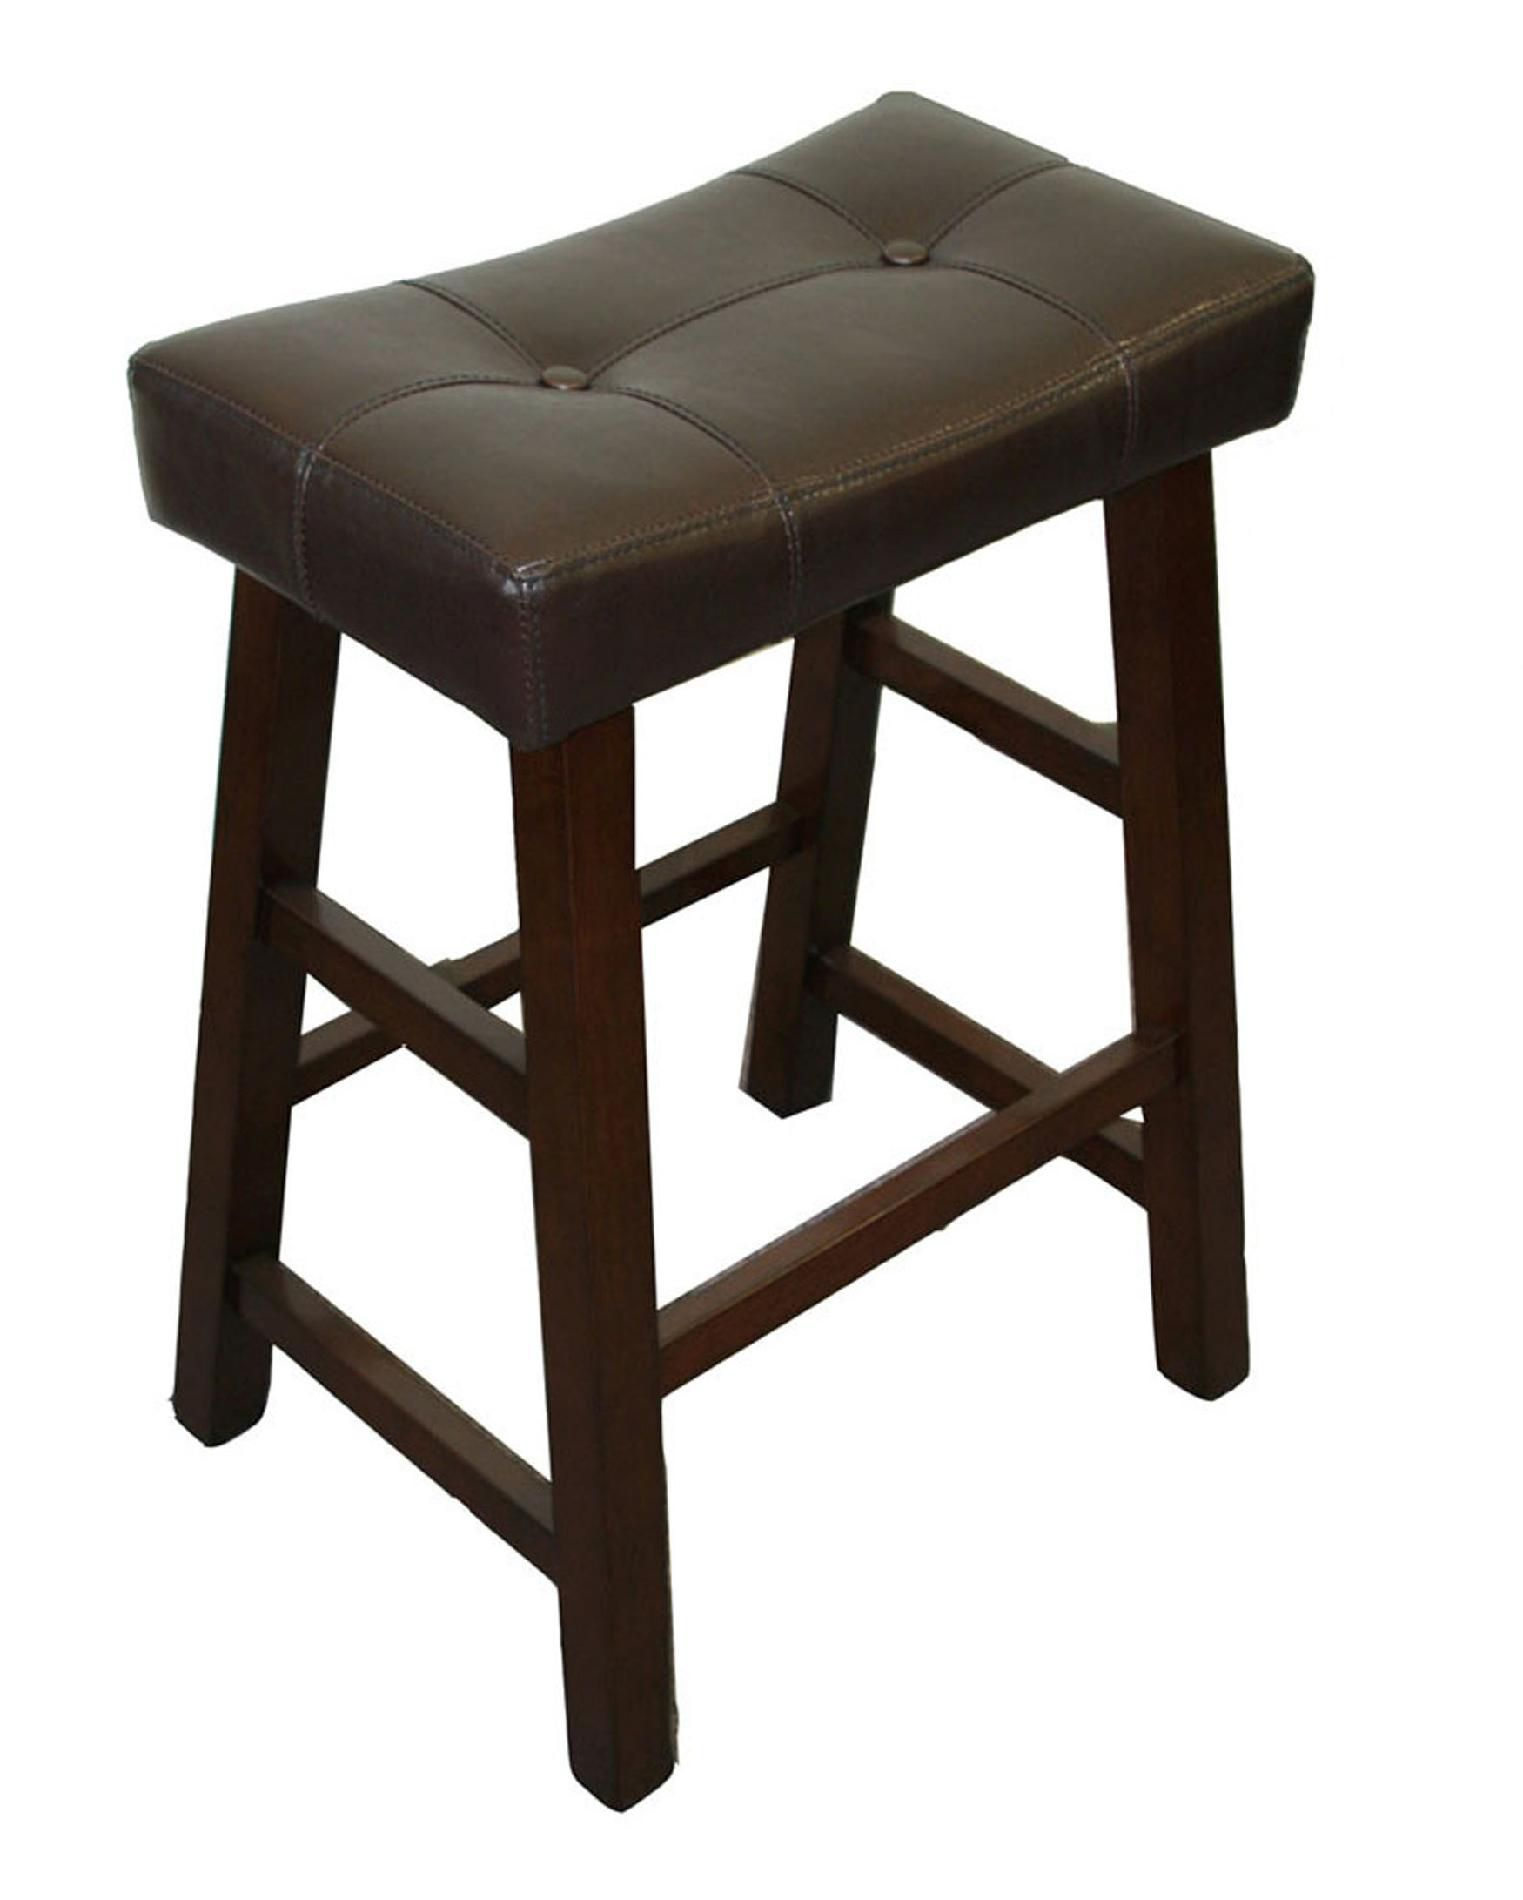 5pc Saddle Pub Set with Tufted Seats